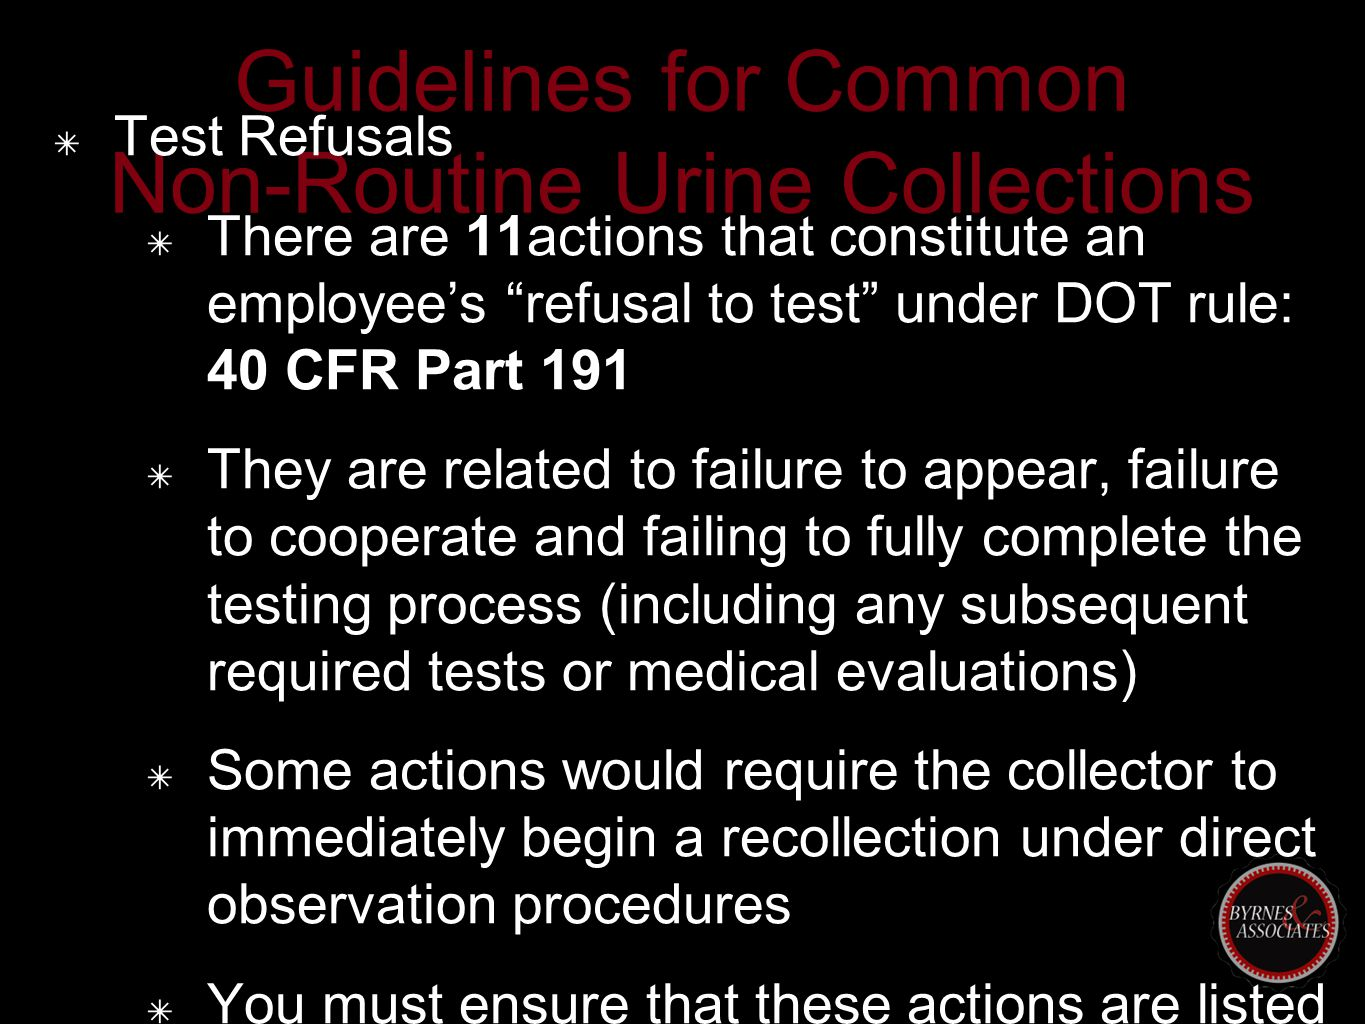 Guidelines for Common Non-Routine Urine Collections ✴ Test Refusals ✴ There are 11actions that constitute an employee's refusal to test under DOT rule: 40 CFR Part 191 ✴ They are related to failure to appear, failure to cooperate and failing to fully complete the testing process (including any subsequent required tests or medical evaluations) ✴ Some actions would require the collector to immediately begin a recollection under direct observation procedures ✴ You must ensure that these actions are listed clearly in your substance abuse policy